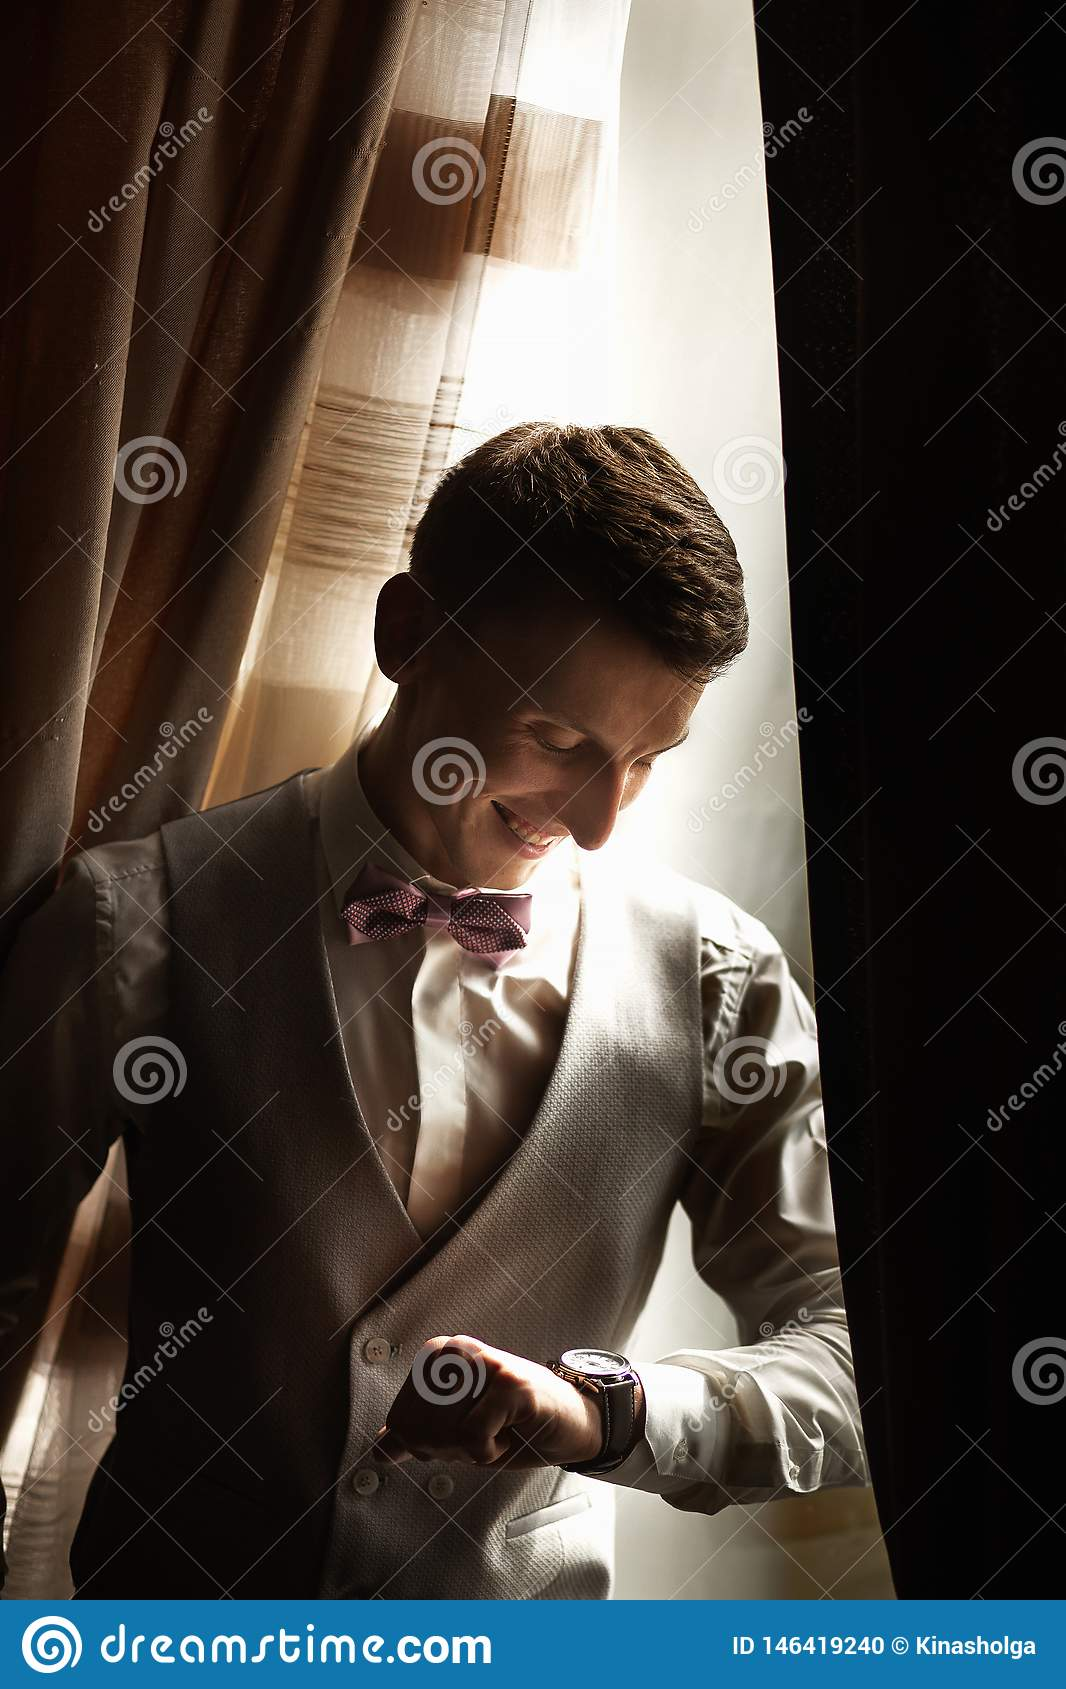 The fashionable bridegroom expects the bride near the window. Portrait of the groom in a grey vest